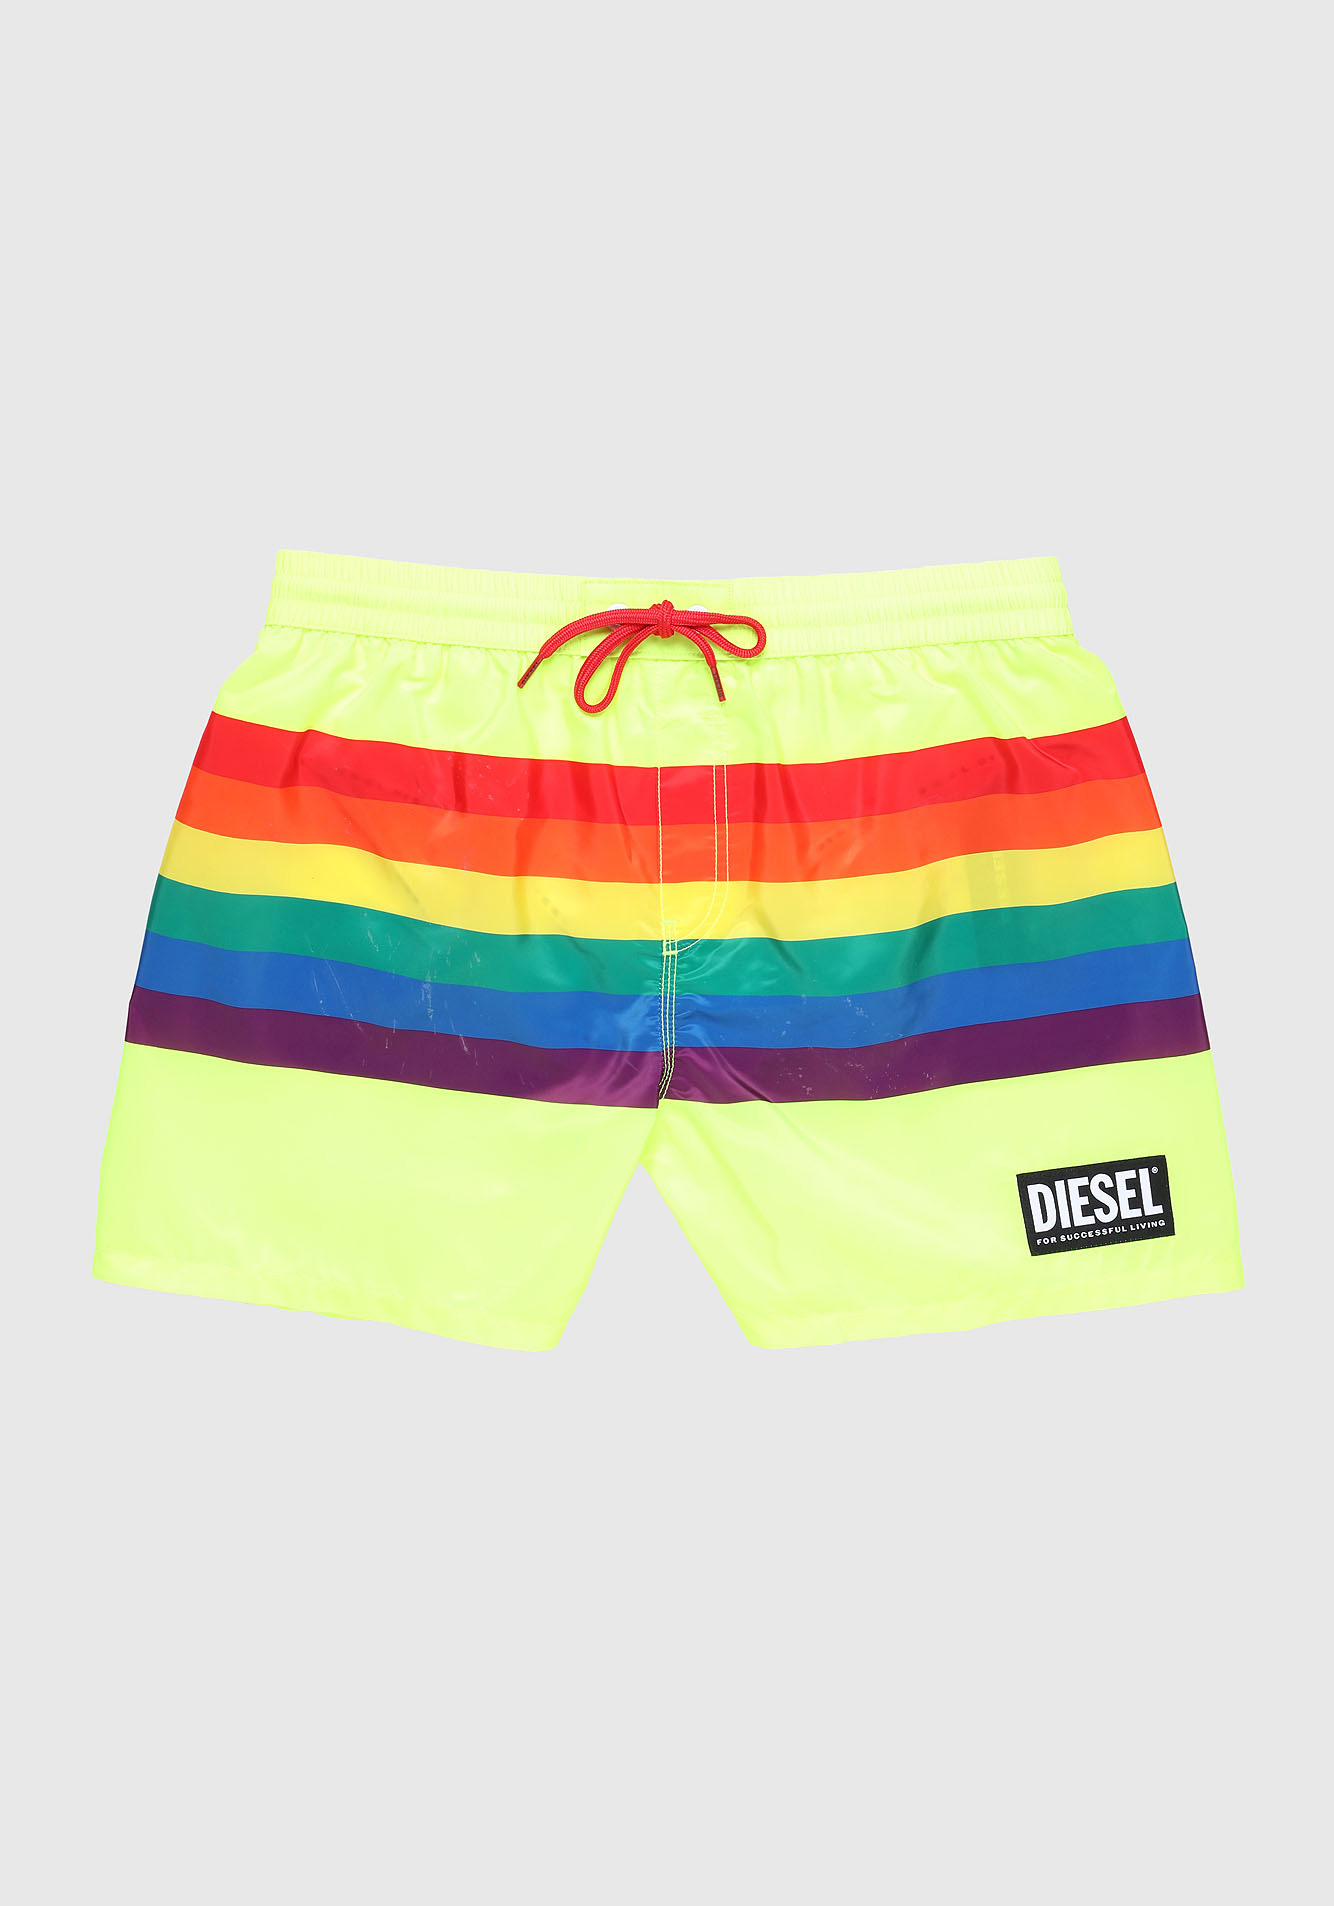 Diesel Pride Swim Shorts Rainbow